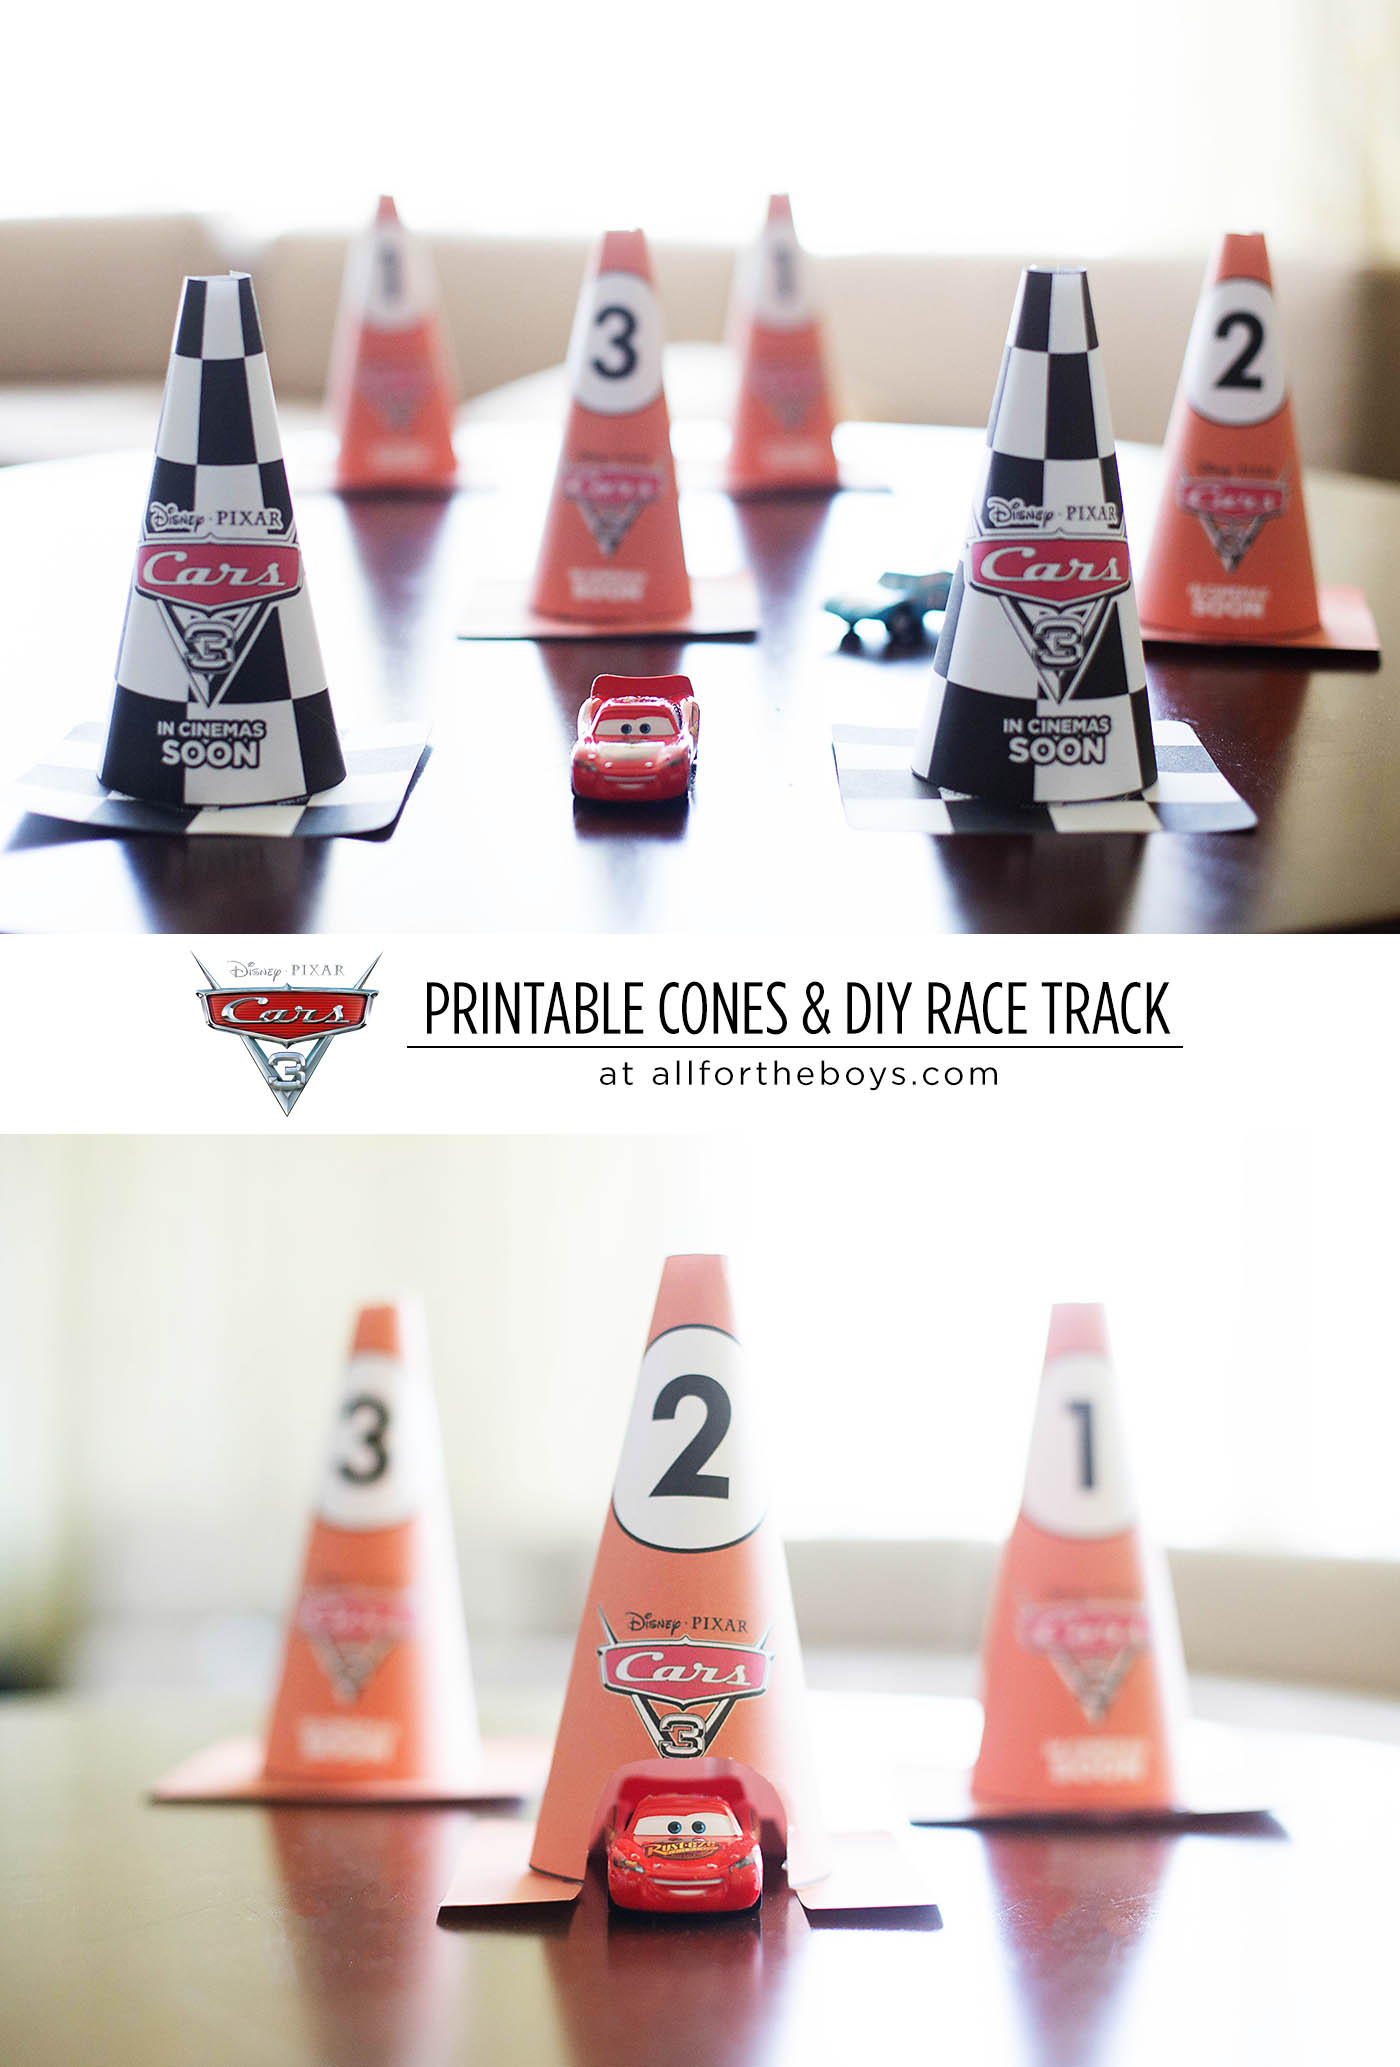 Cars 3 printable activities & cones for a DIY race course